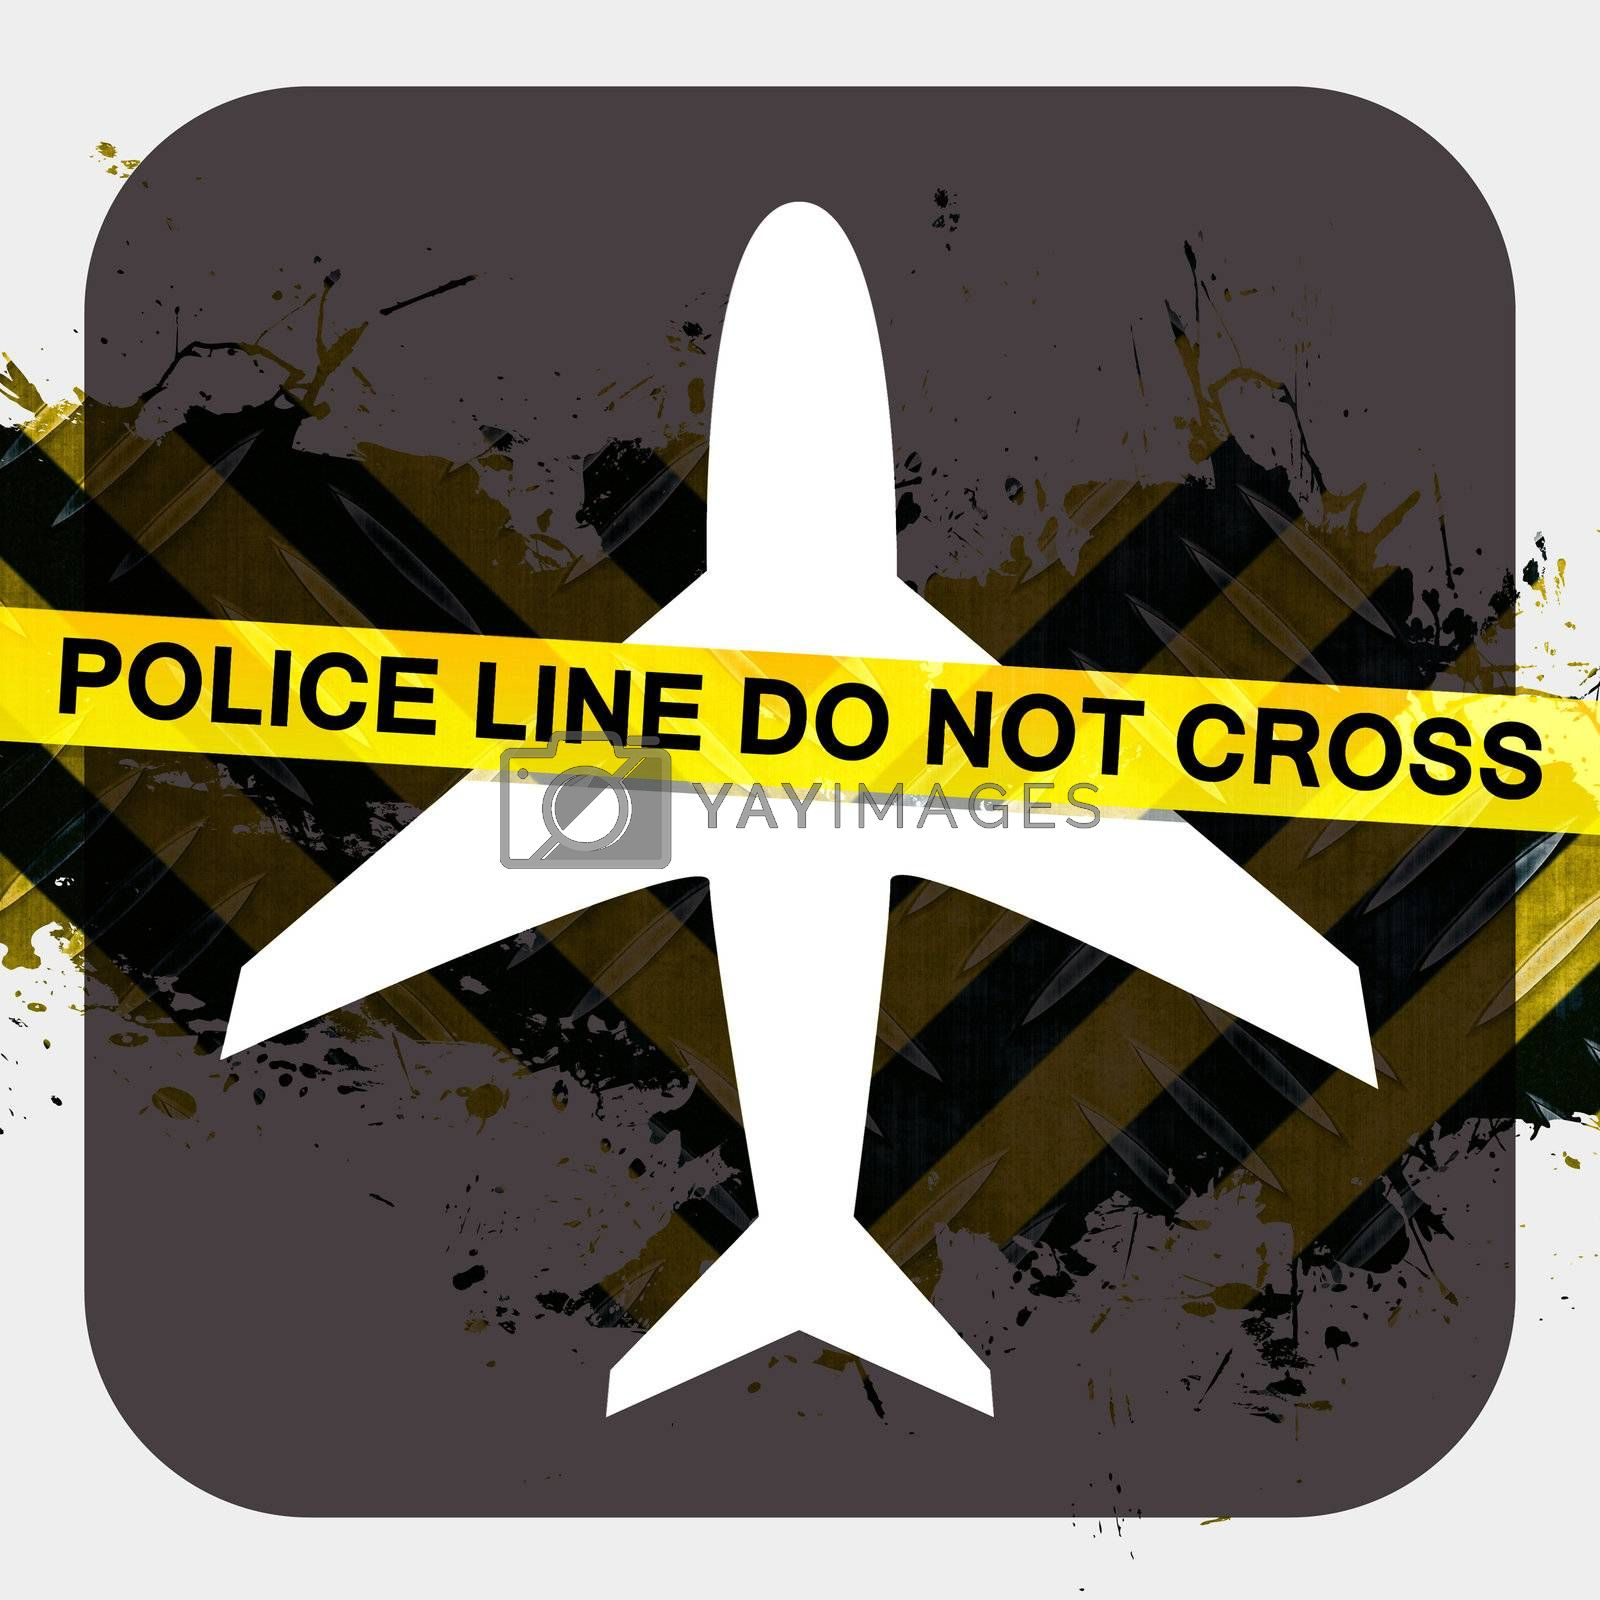 Airport security screening illustration terrorist or criminal activity with police tape reading POLICE LINE DO NOT CROSS.